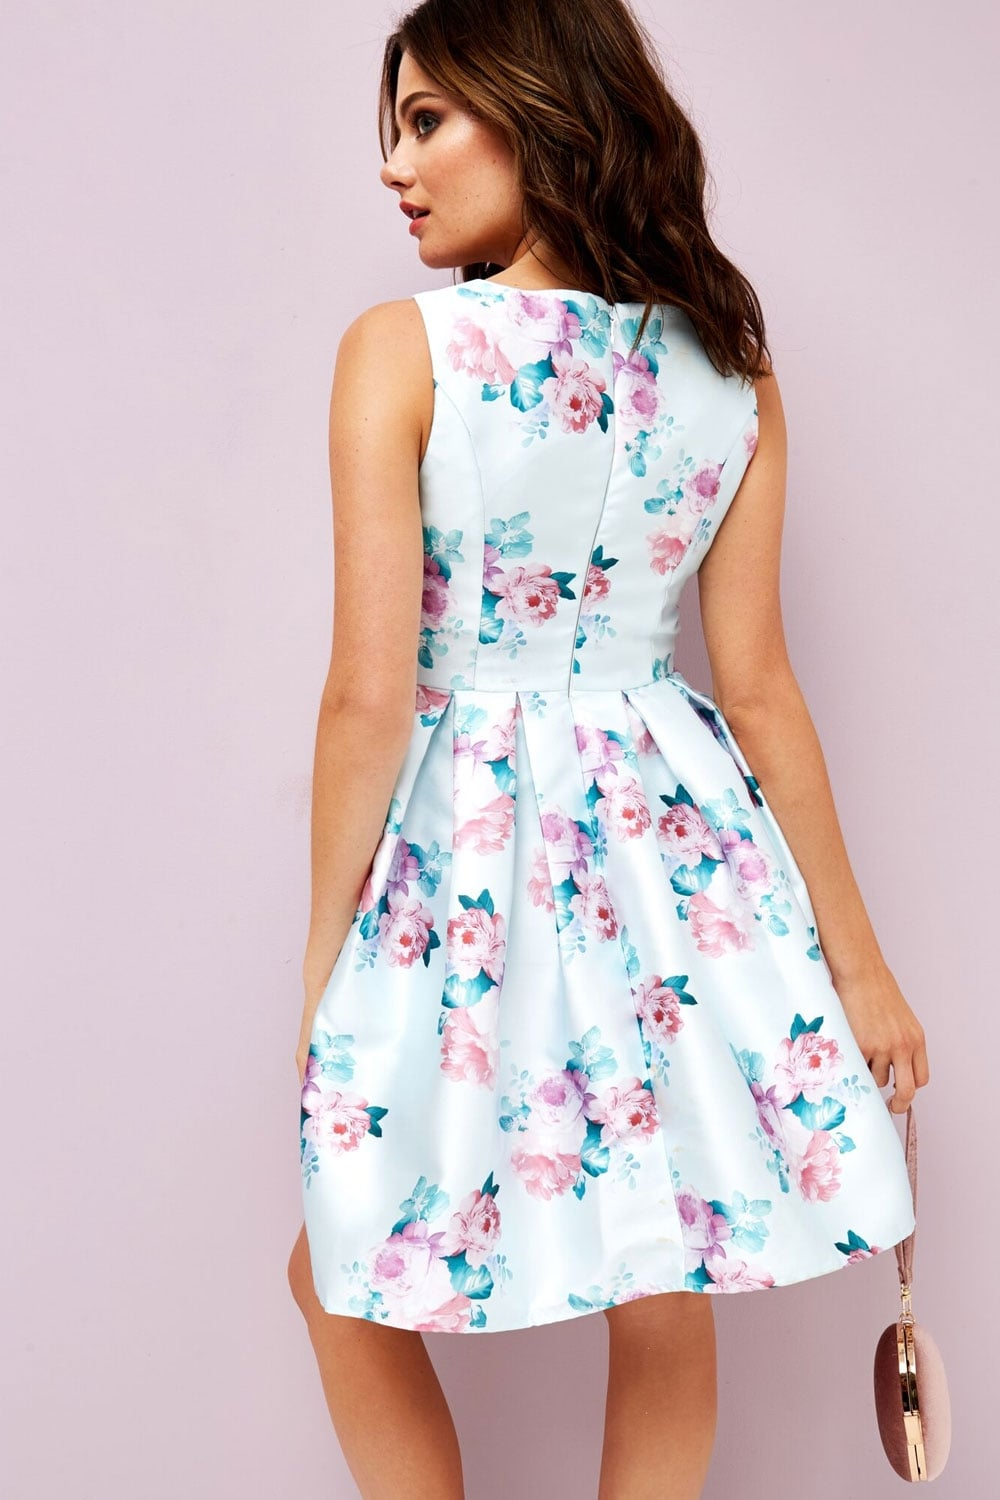 Girls on Film Pale Blue Floral Skater Dress - Girls On Film from ... 8eefd9bf0